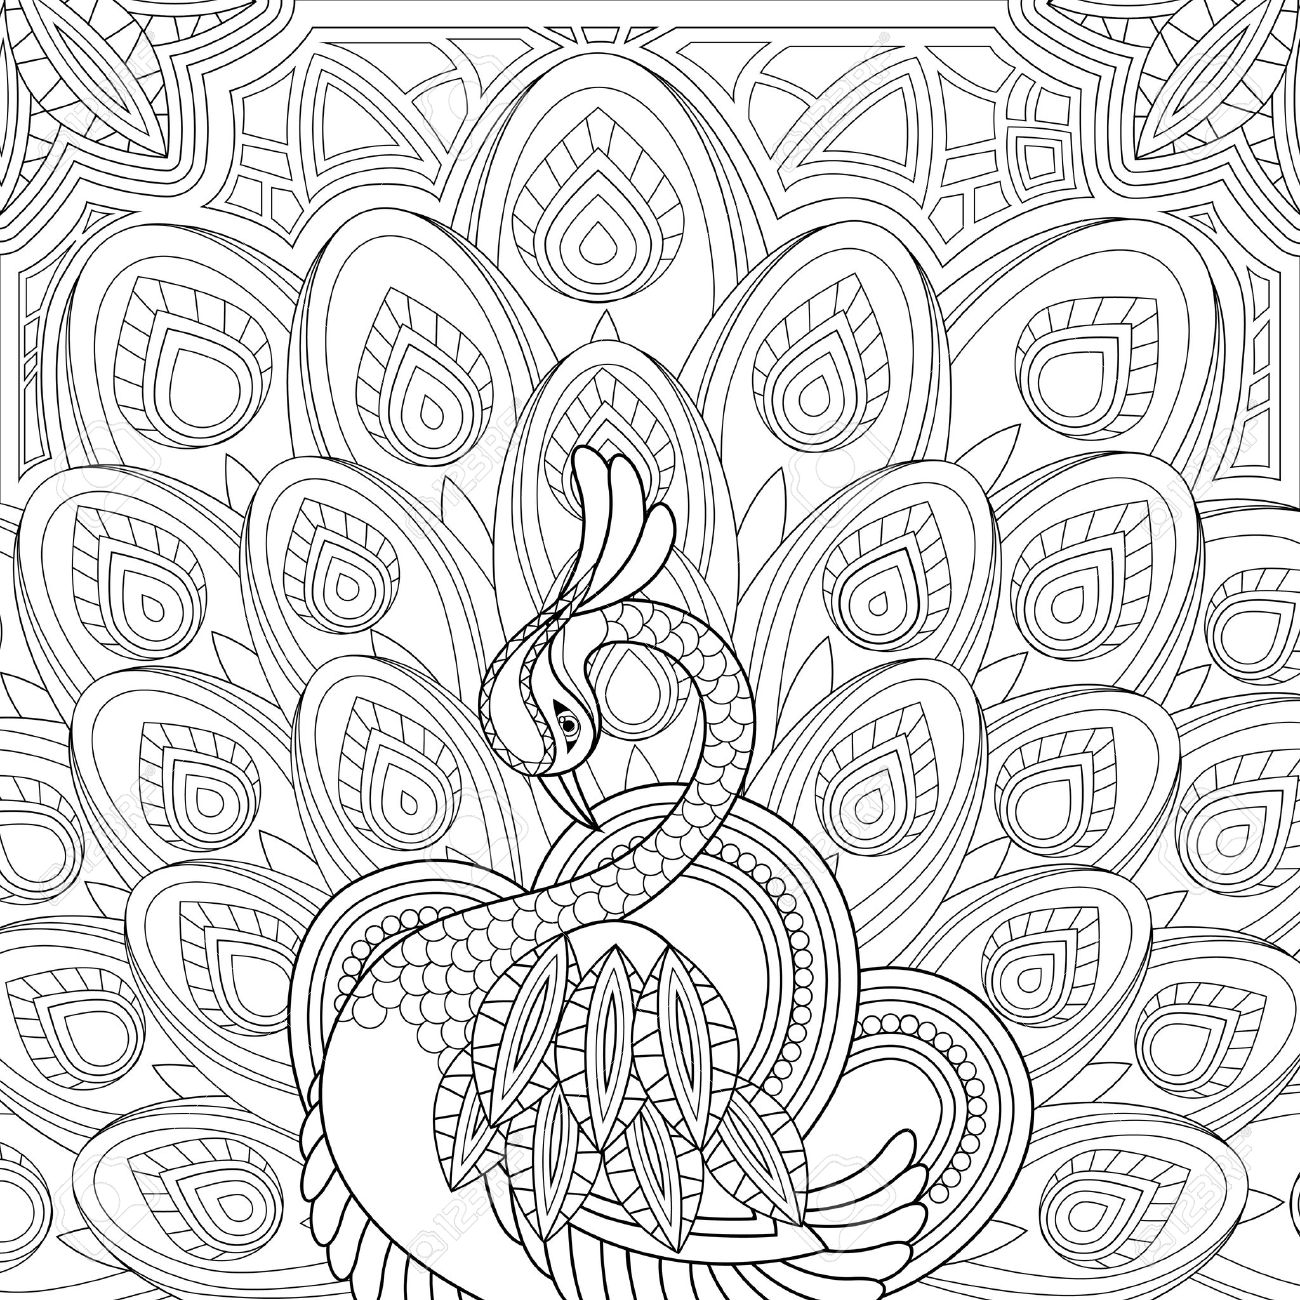 vector elegant peacock coloring page in exquisite style